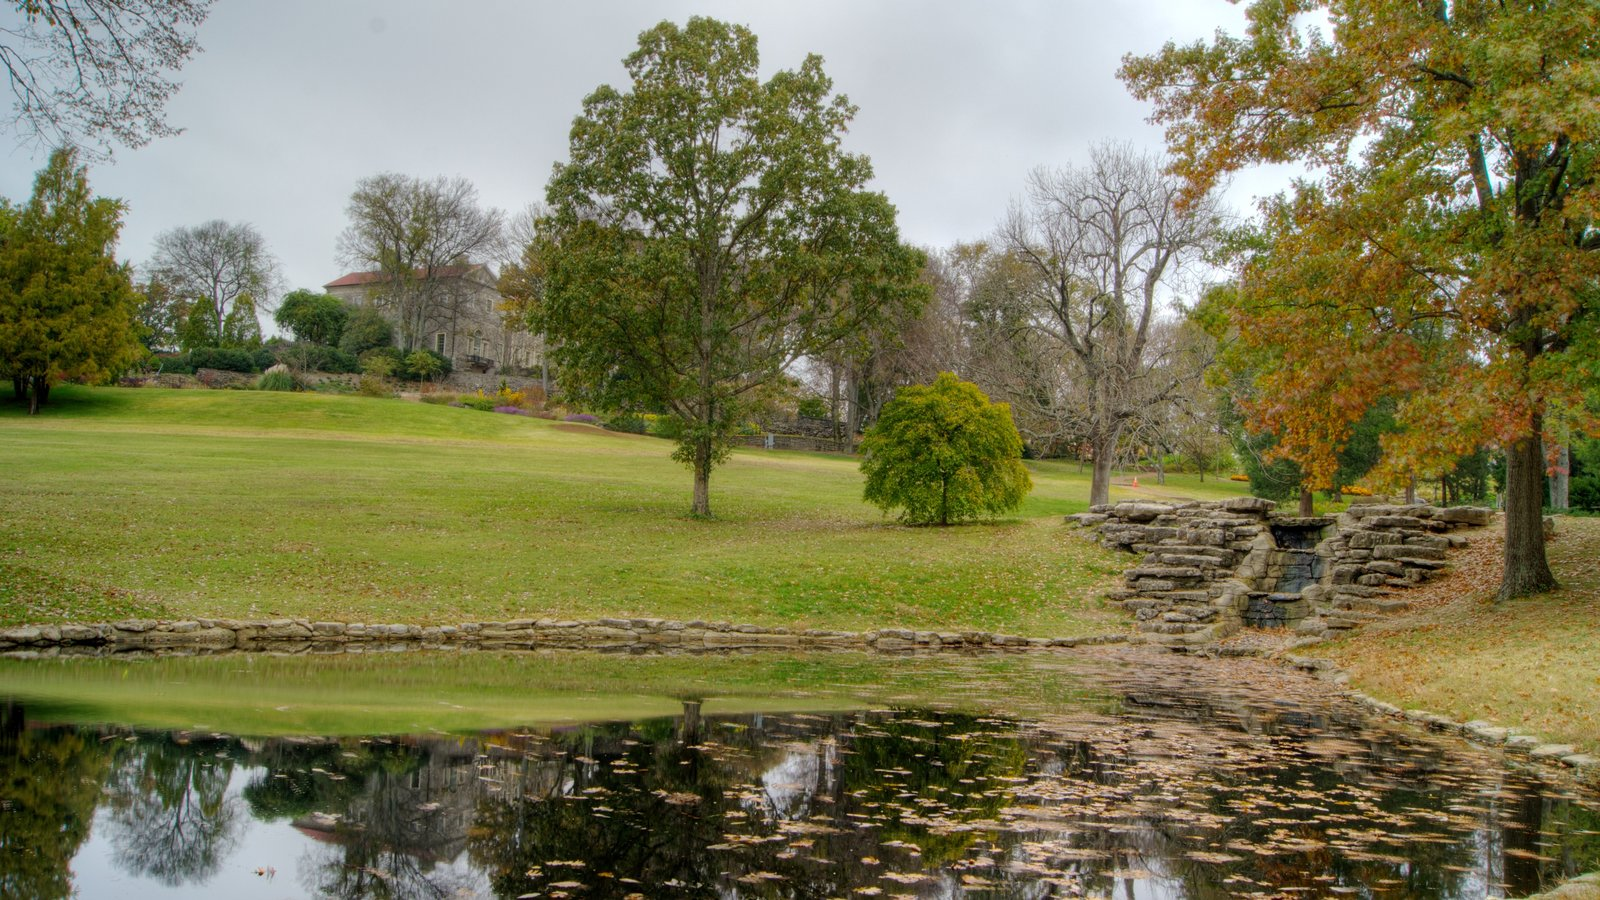 Etonnant Cheekwood Botanical Gardens And Museum Of Art Showing A Pond, Autumn Leaves  And Landscape Views